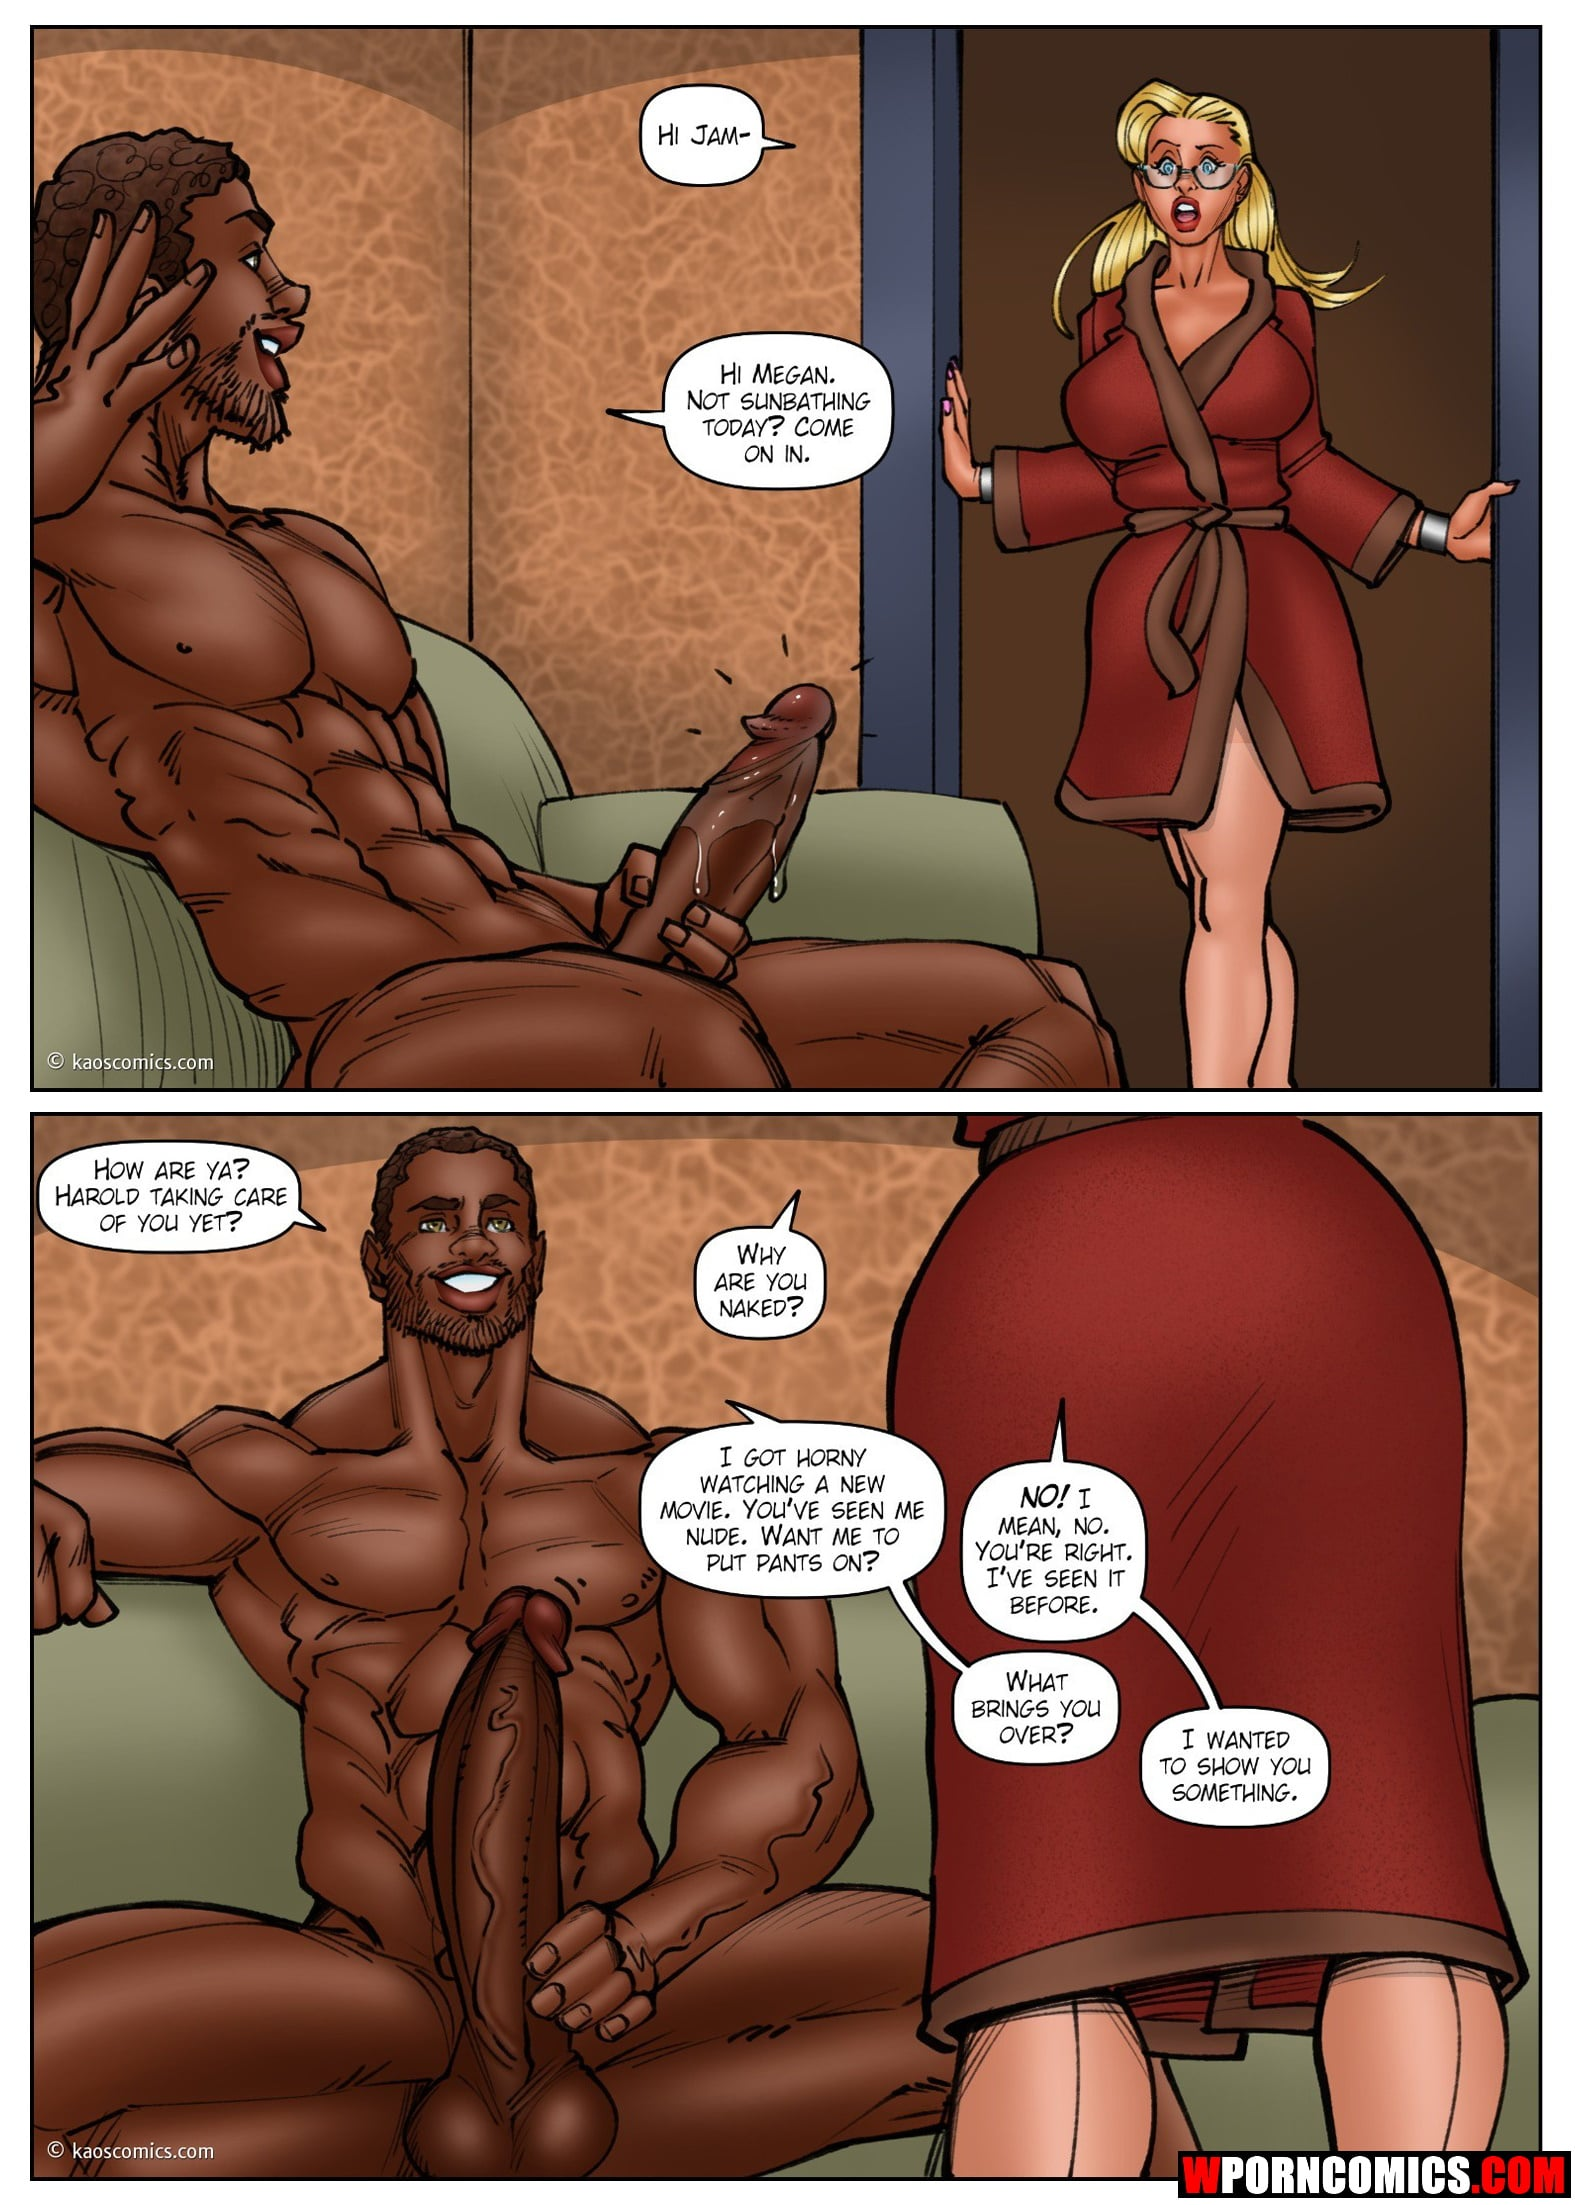 porn-comic-lessons-from-the-neighbor-the-third-lesson-2020-02-26/porn-comic-lessons-from-the-neighbor-the-third-lesson-2020-02-26-14147.jpg